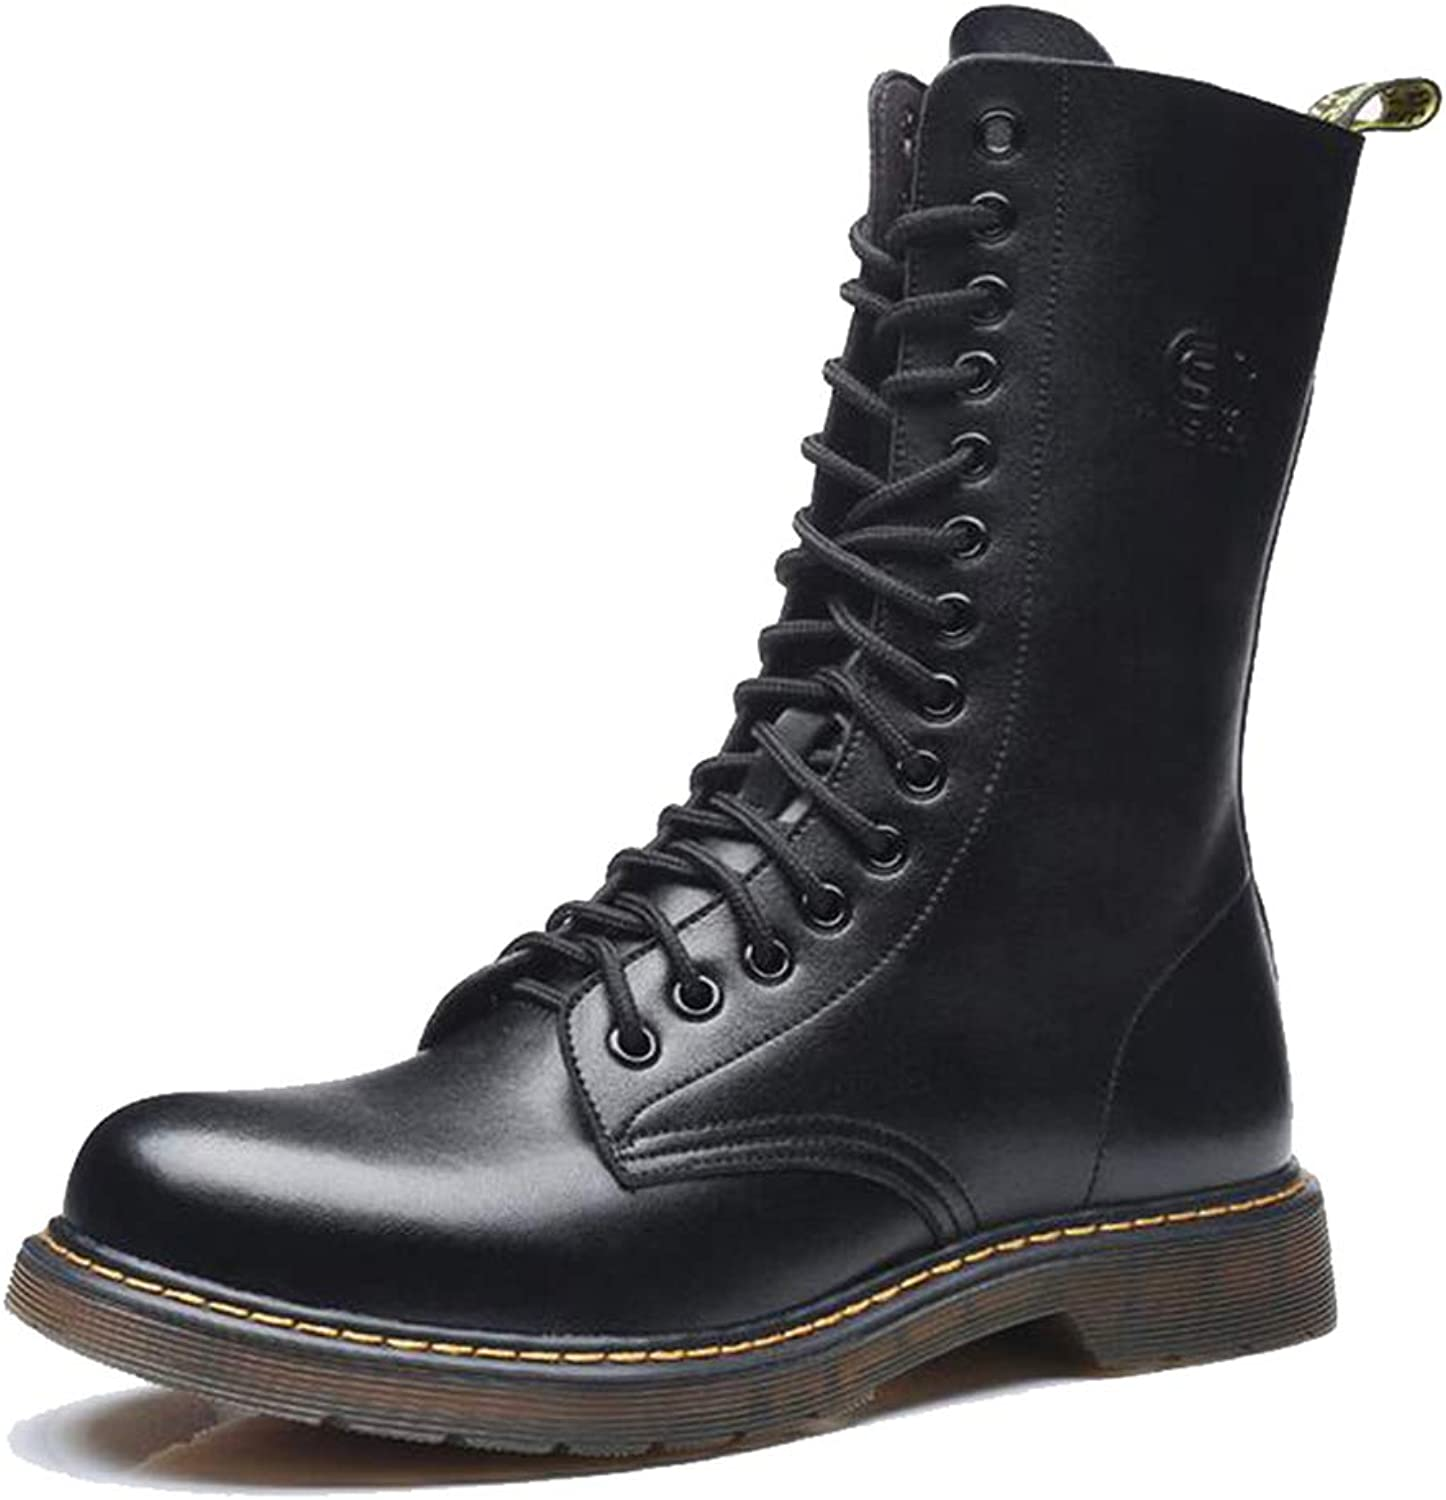 Men Martin Military Boots Leather Mid-Calf Boots Autumn Winter Cross-Tied shoes Lace Up Footwear with Non-Slip Rubber Sole in Black Brown